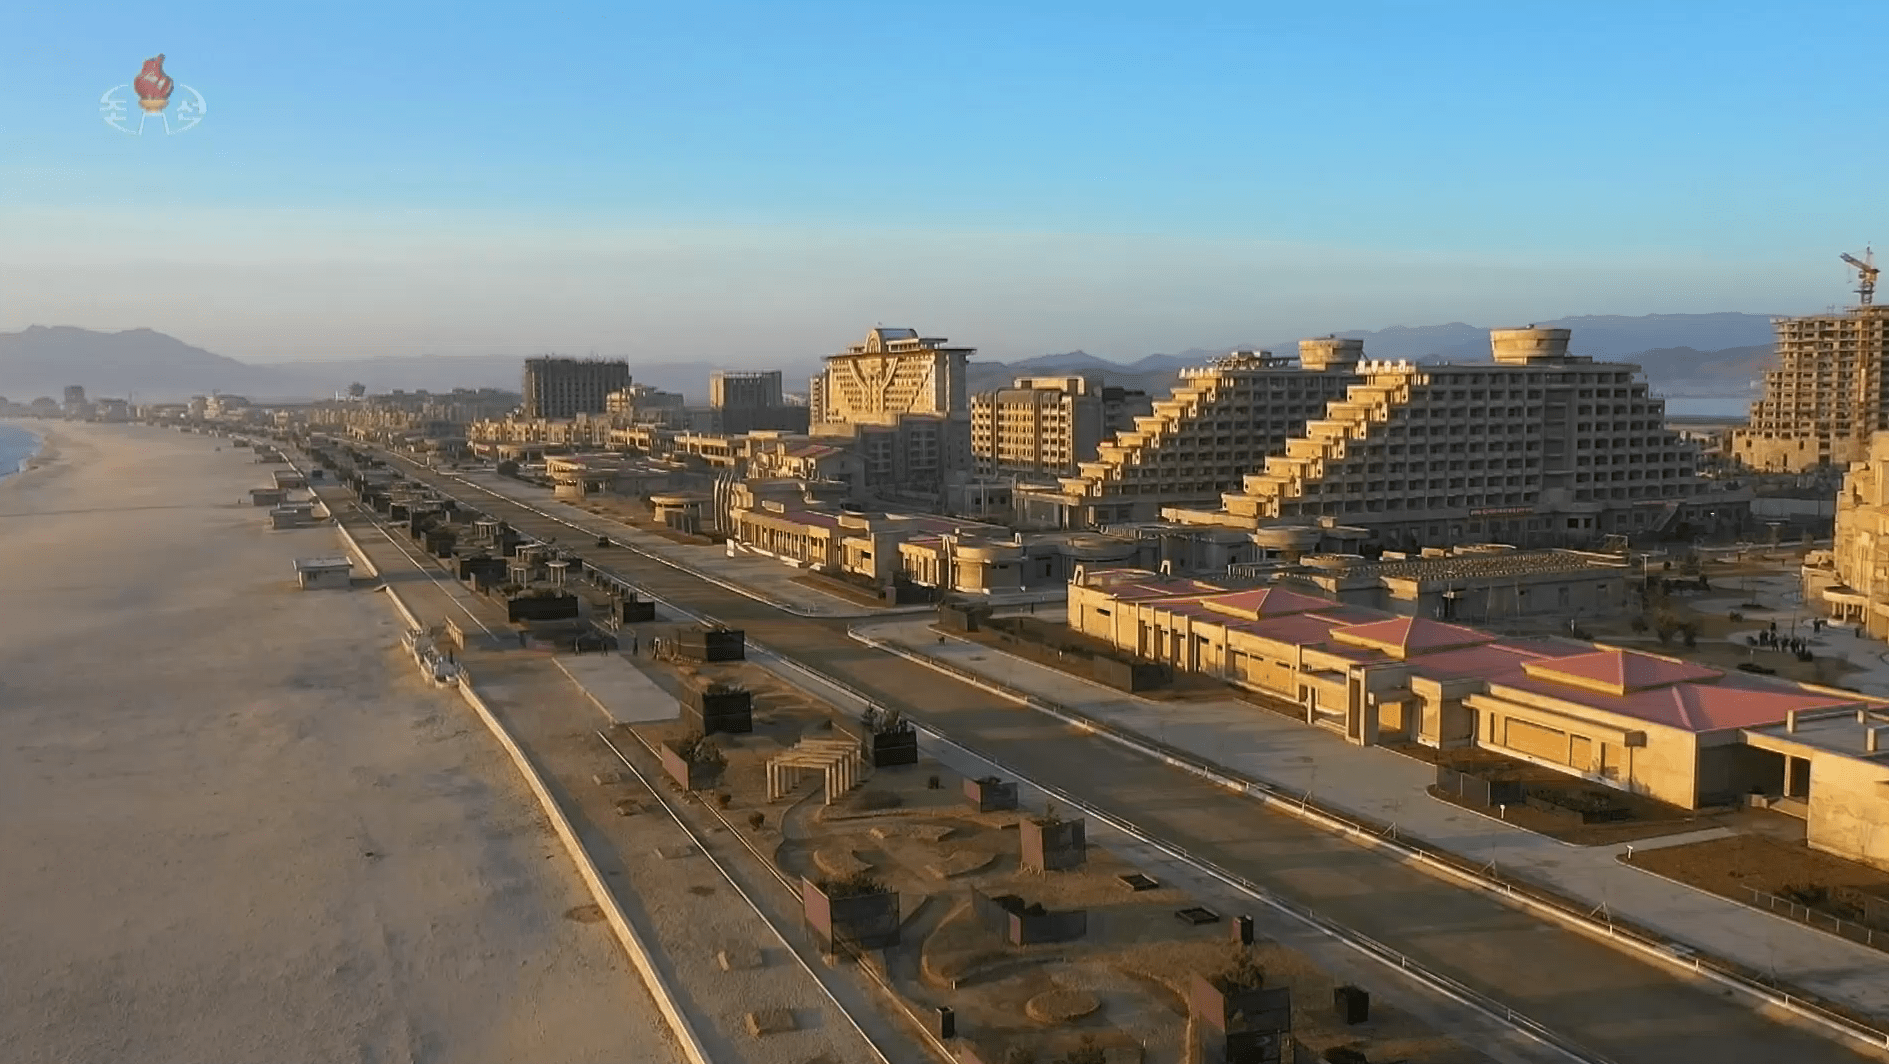 Two years past deadline, major North Korean beach resort inches towards opening